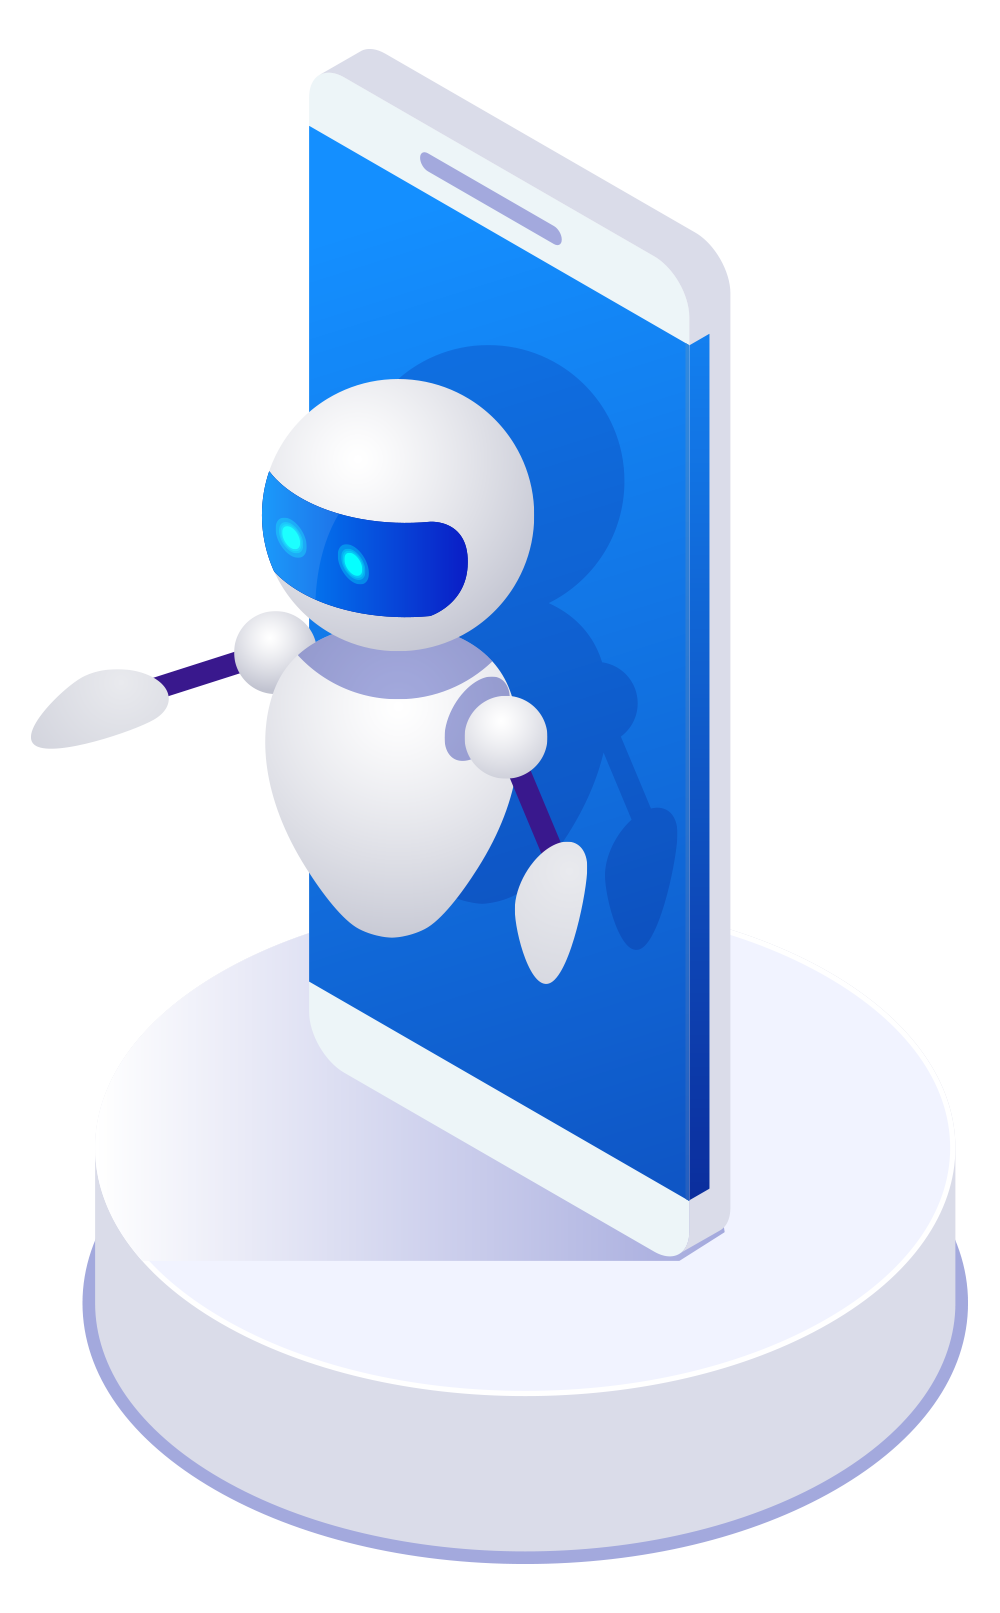 iso-chatbot